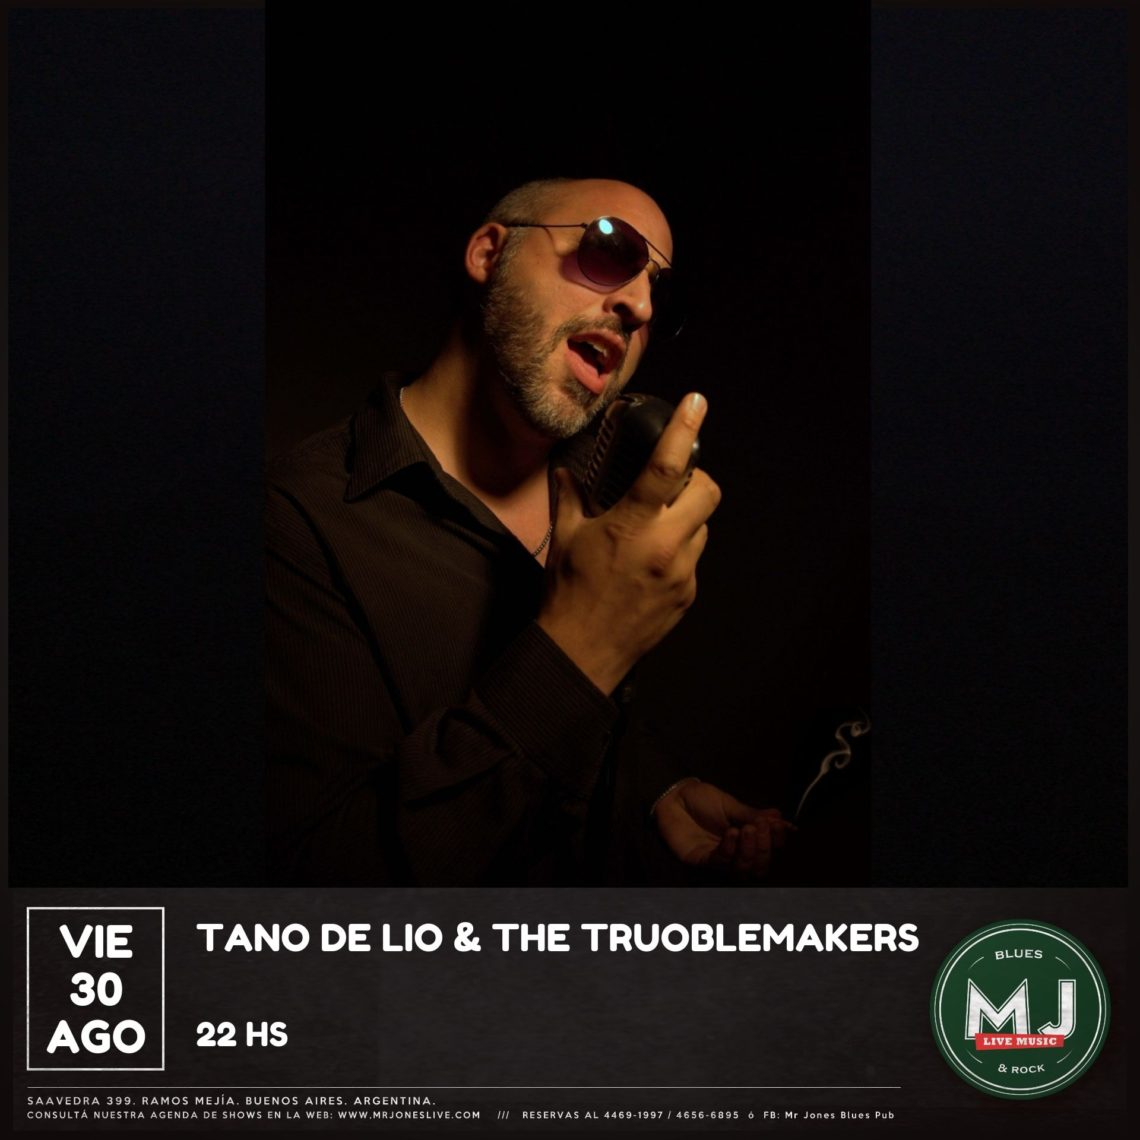 Tano De Lio & The Troublemakers